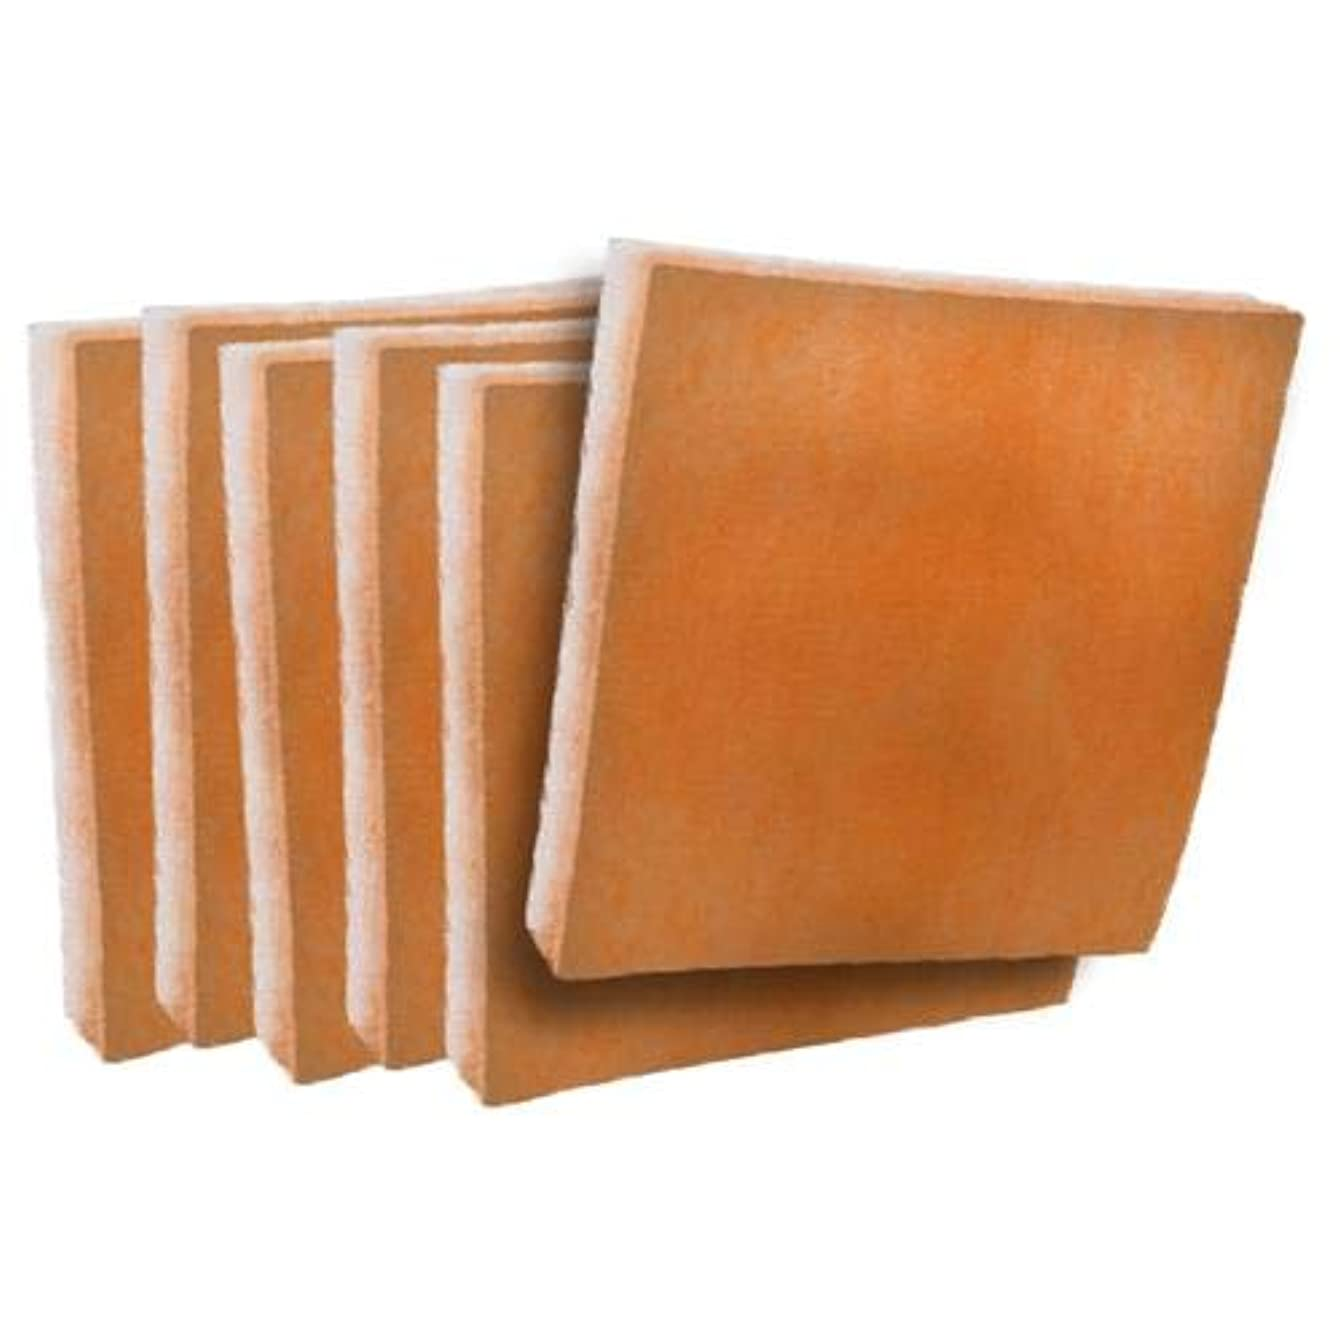 Orange/White Tackified MERV 8 Replacement Air Filter Media Pad Inserts - 17-1/2